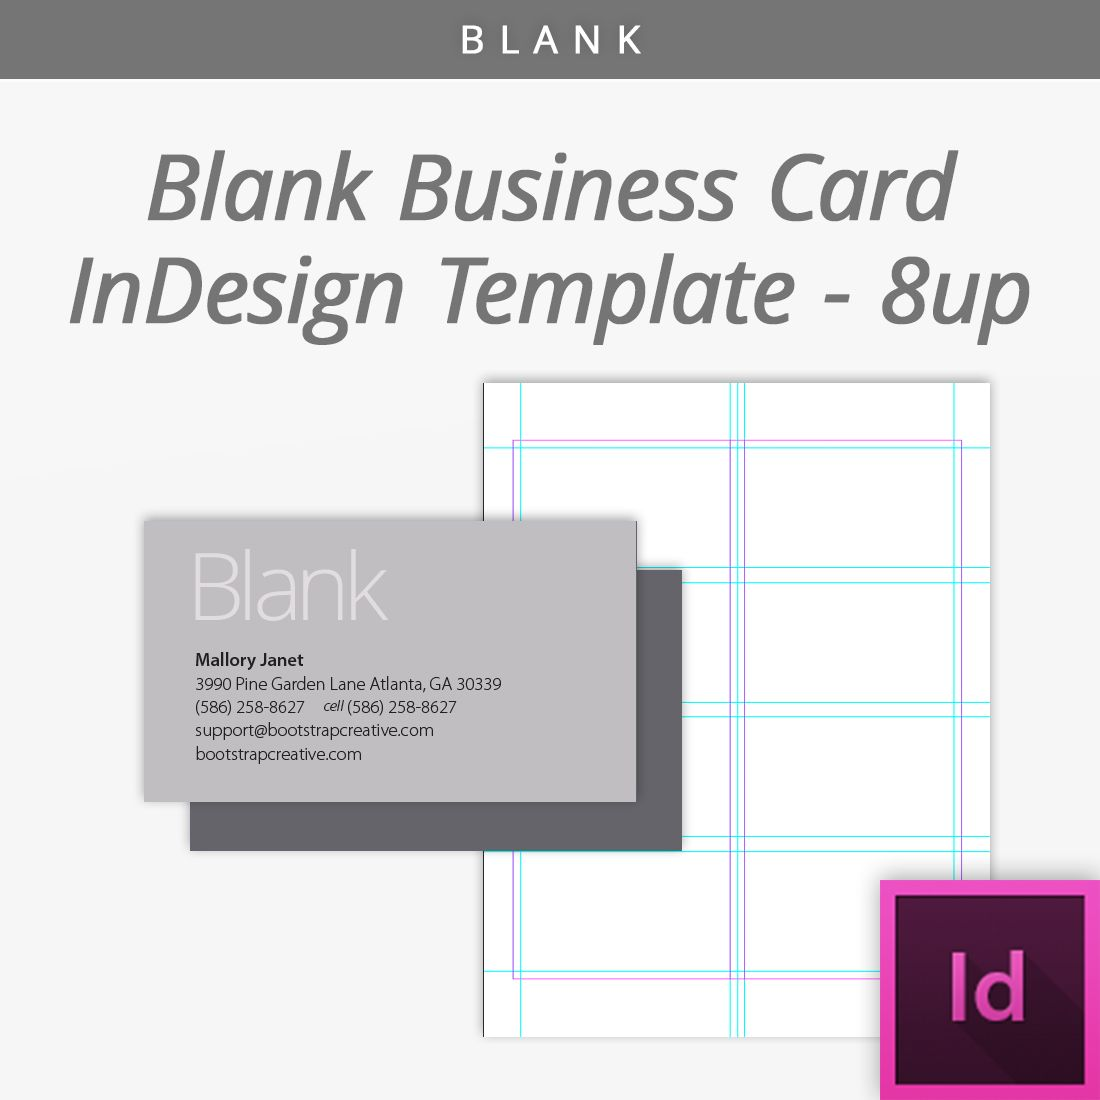 Blank indesign business card template 8 up free download blank indesign business card template 8 up free download designtemplate wajeb Images